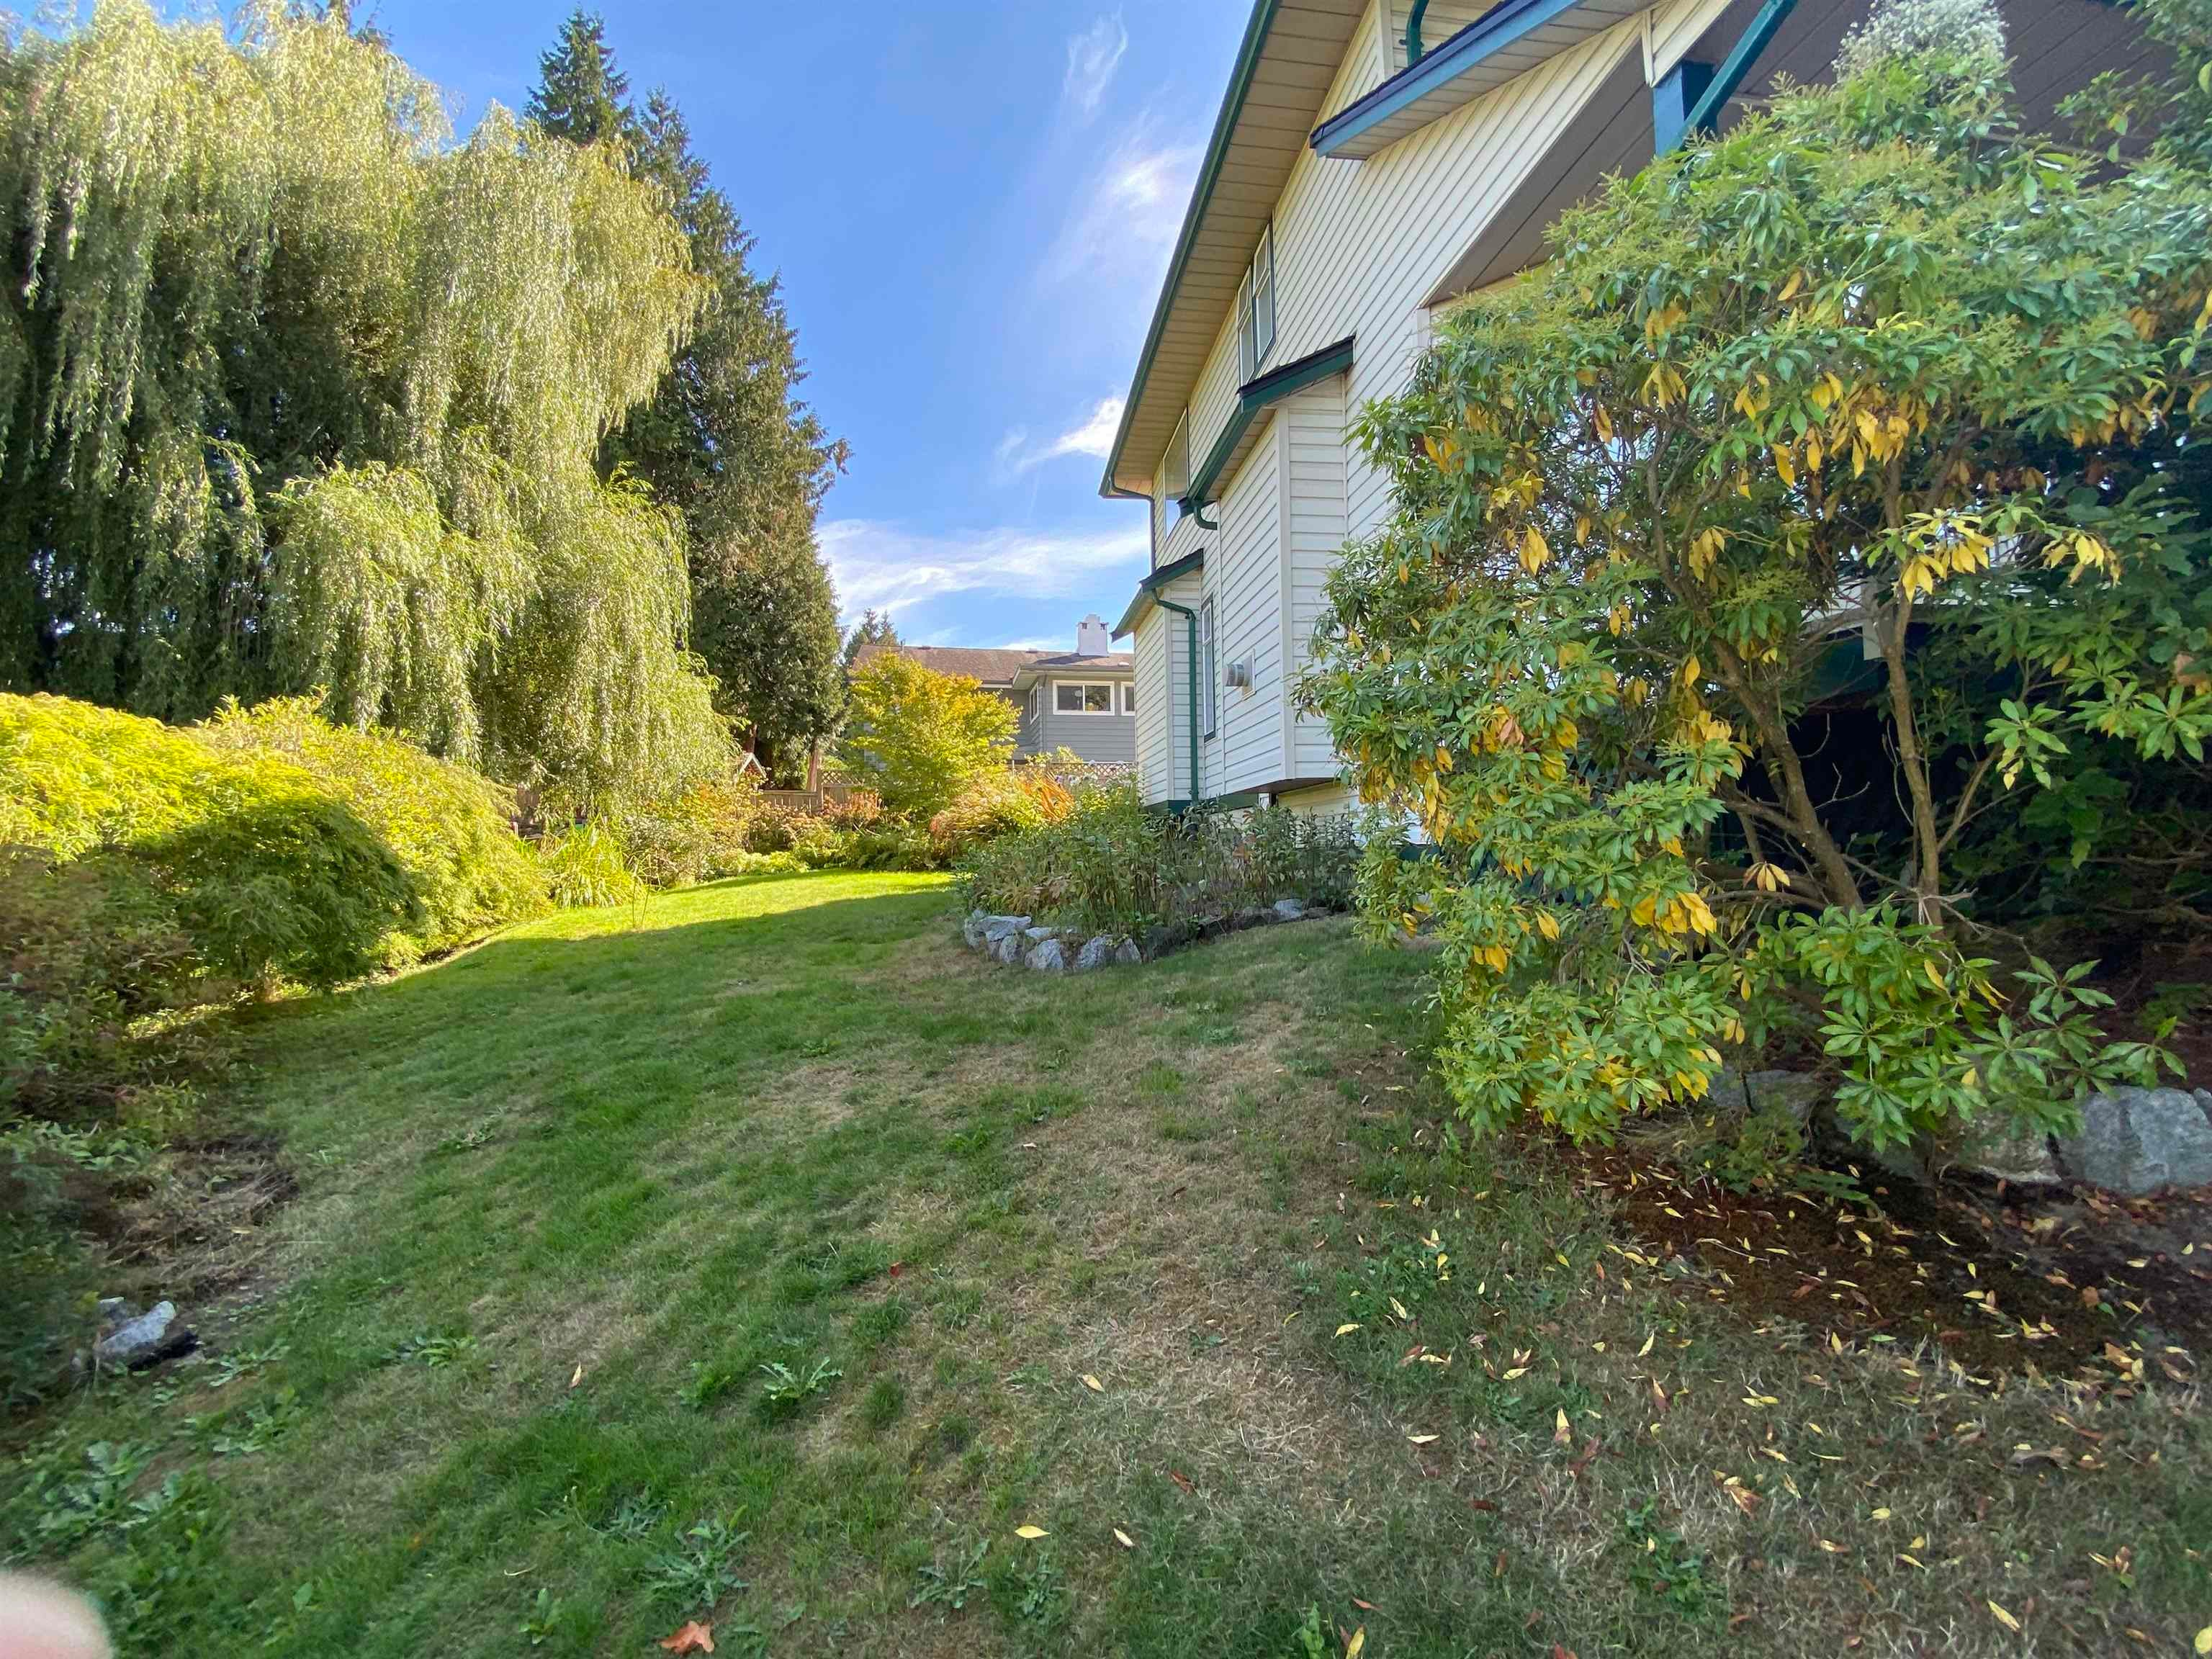 19950 48A AVENUE - Langley City House/Single Family for sale, 4 Bedrooms (R2615832) - #16